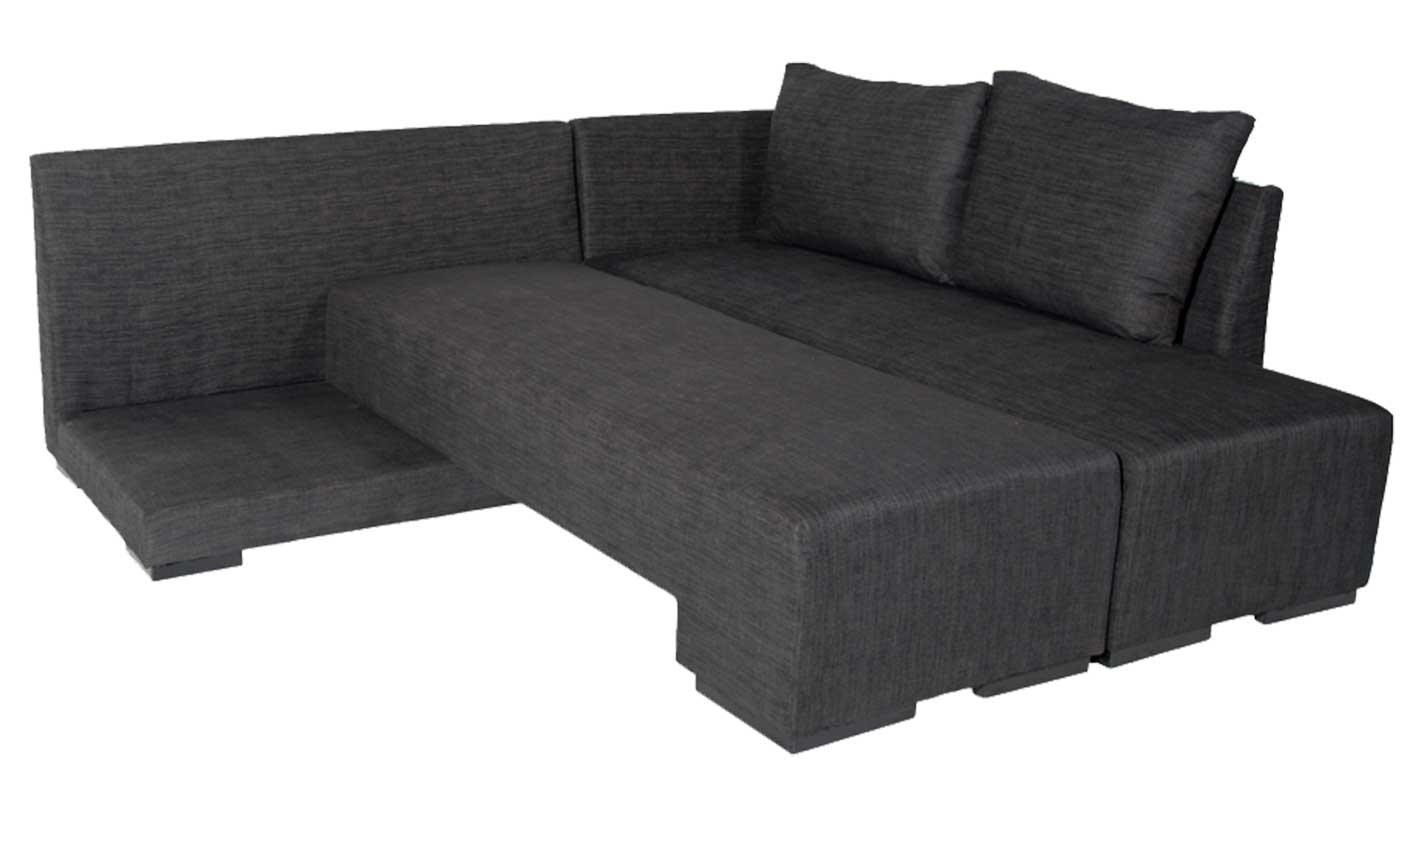 new sleep a dial couch sleeper couches york bed